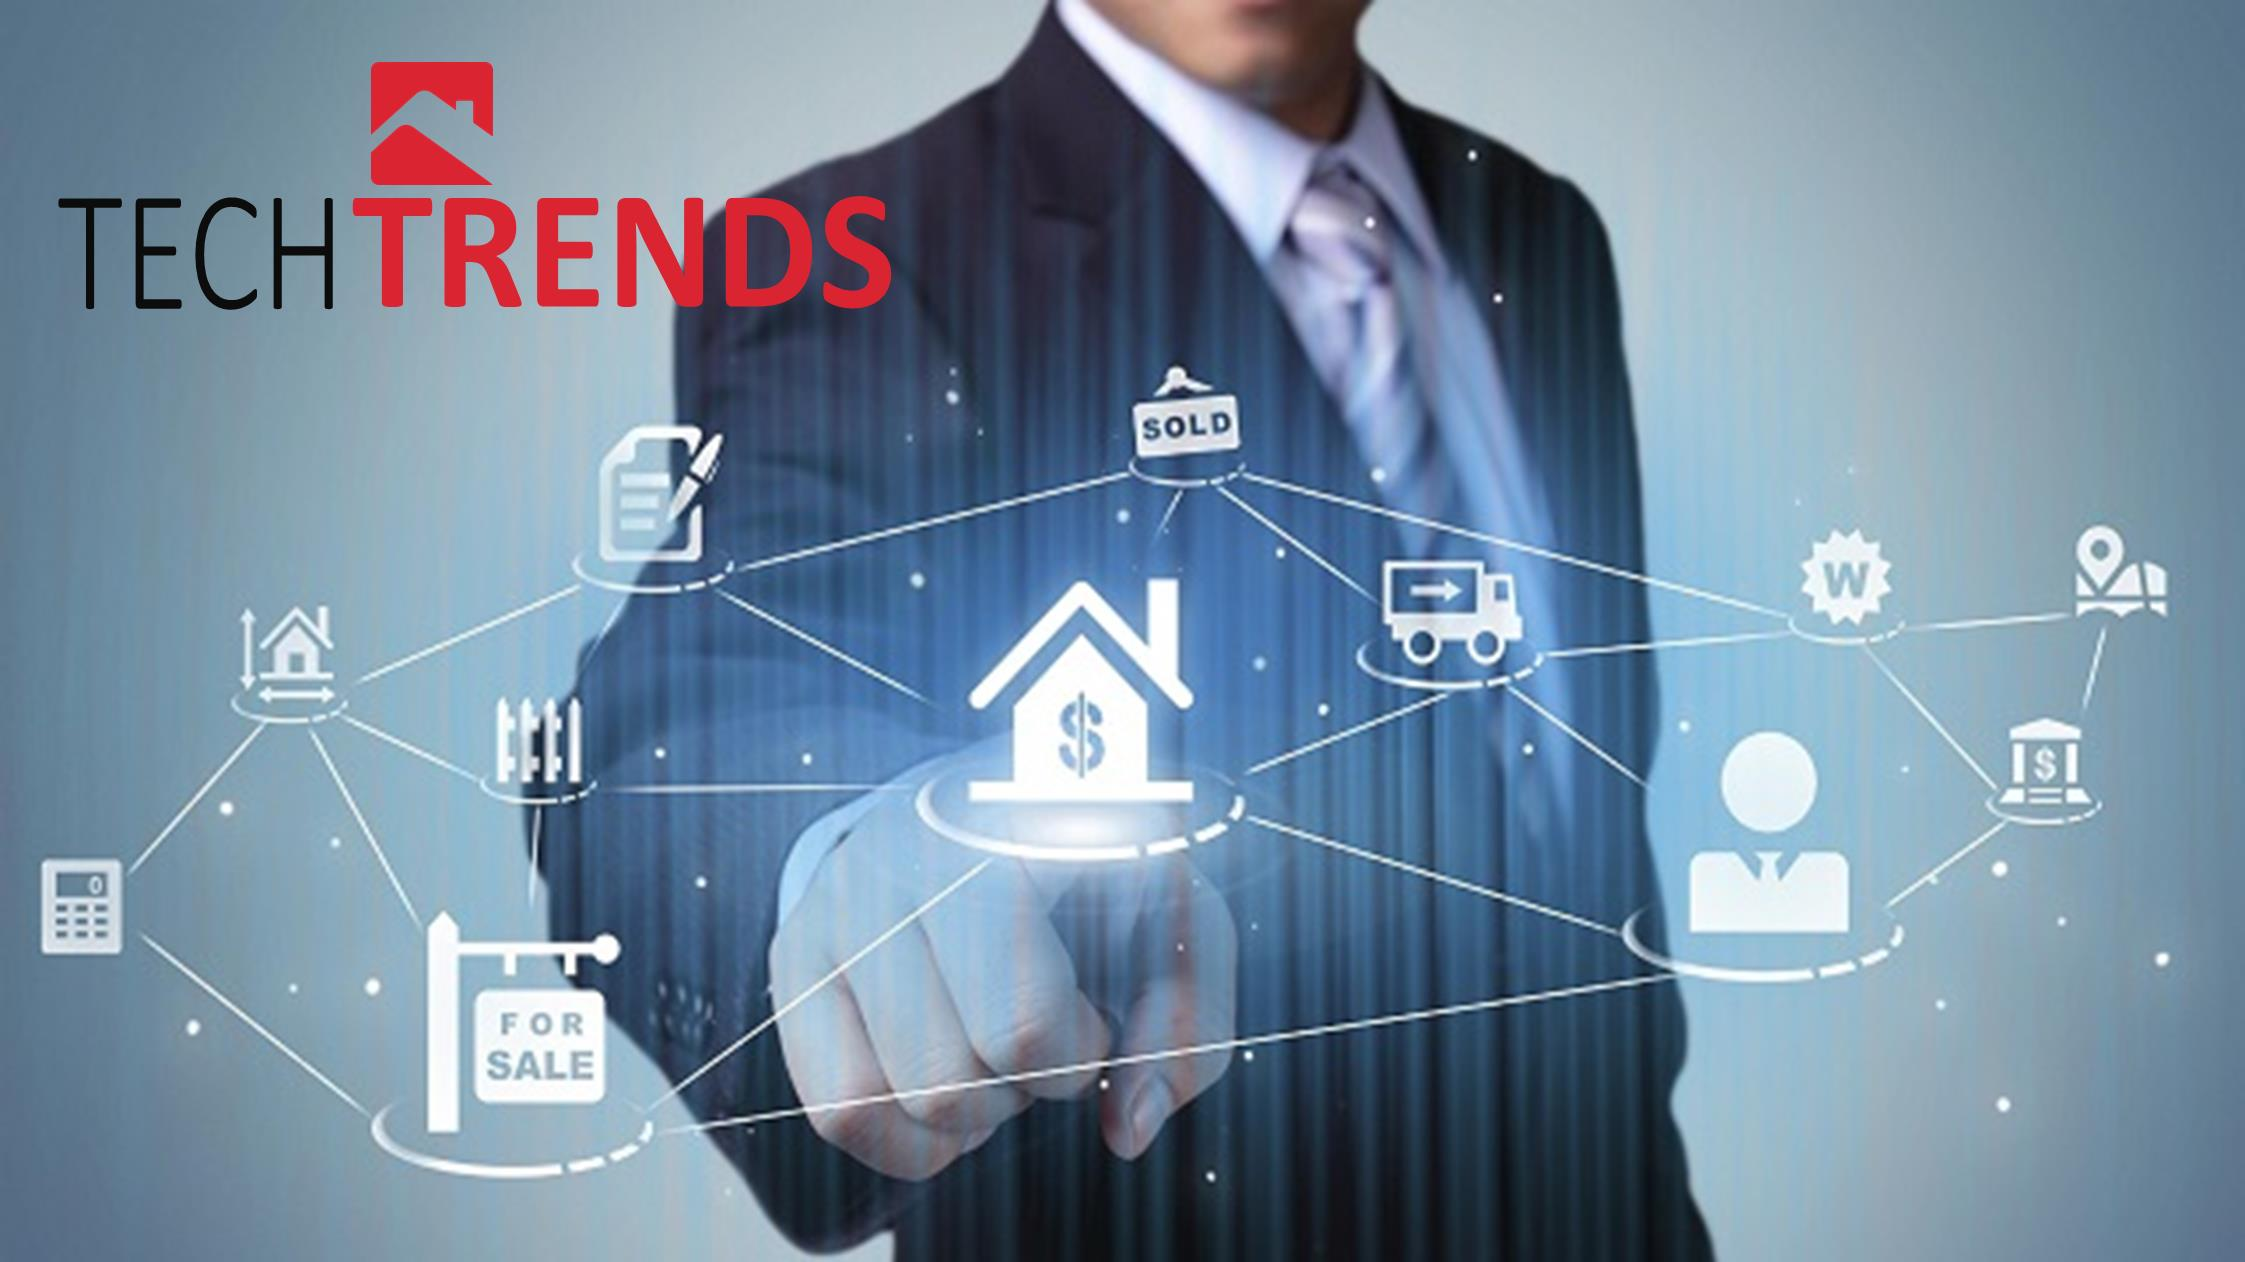 Tech Trends Discover the new real estate technology trends from IRES. We cover the latest real estate technology news on tools, tips, gadgets, conferences, and more. If you have any technology you want to share, please let us know! 626-593-4225